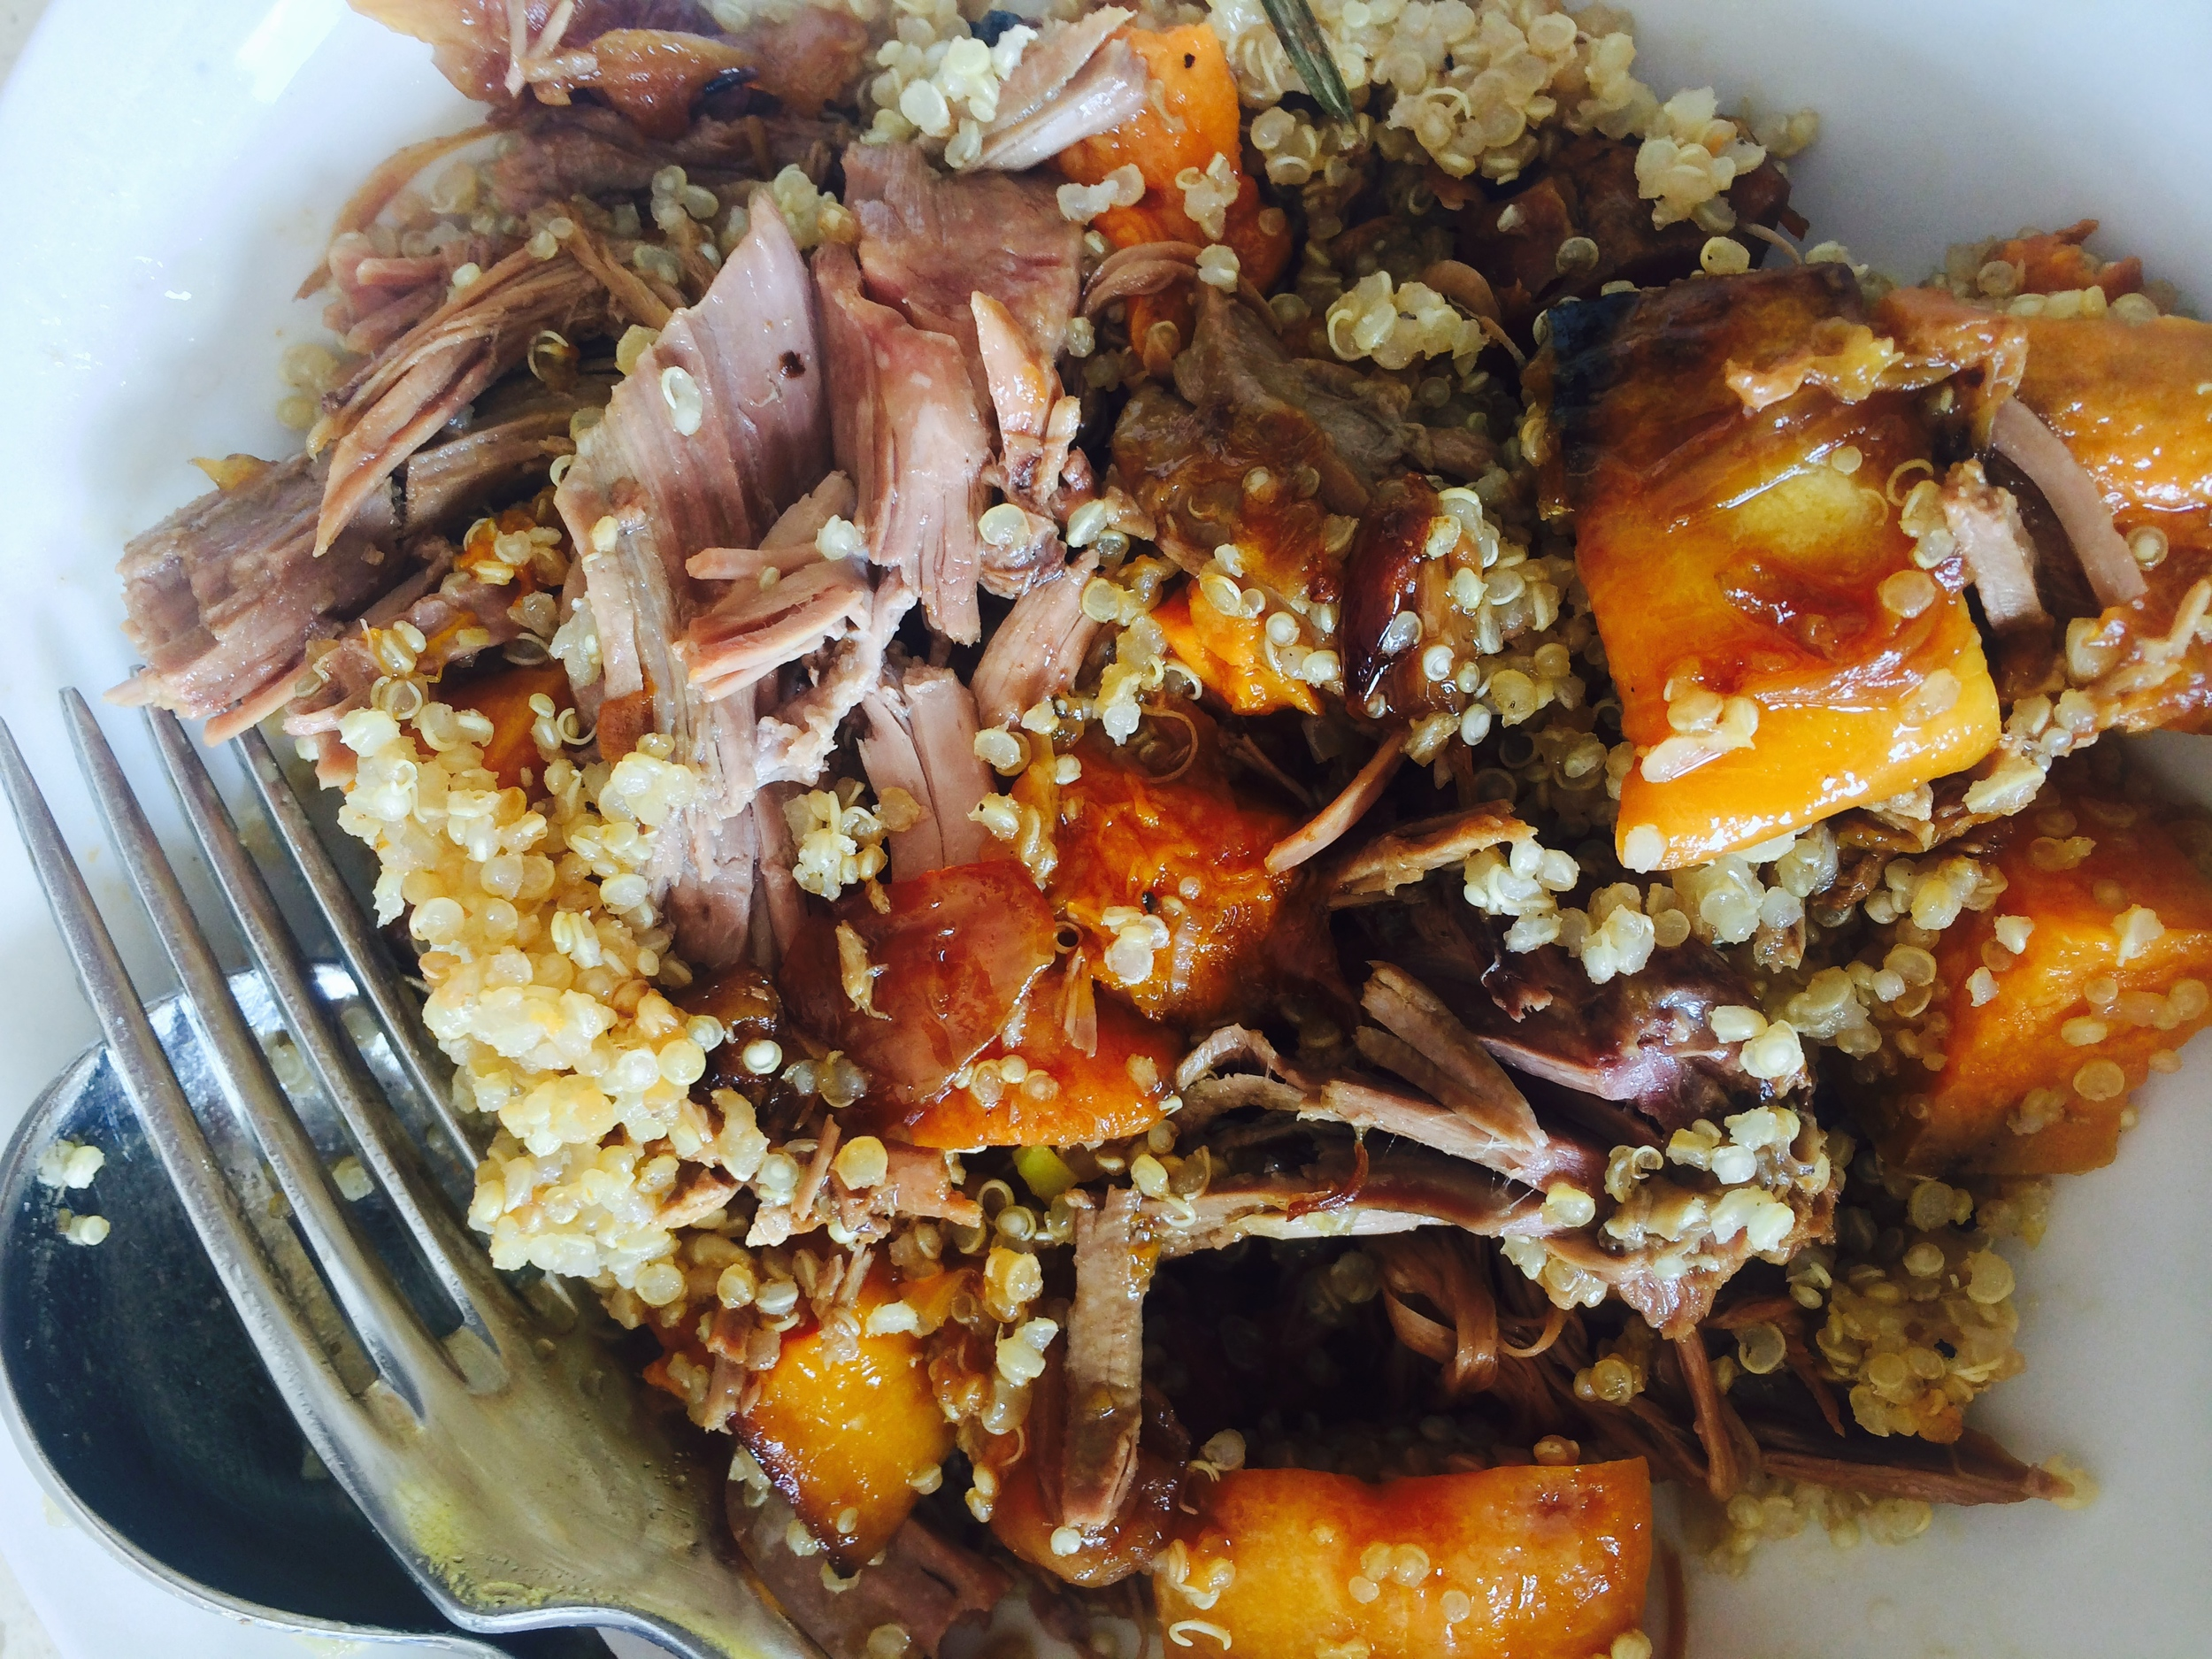 Warm Lamb, Quinoa and Pumpkin Salad